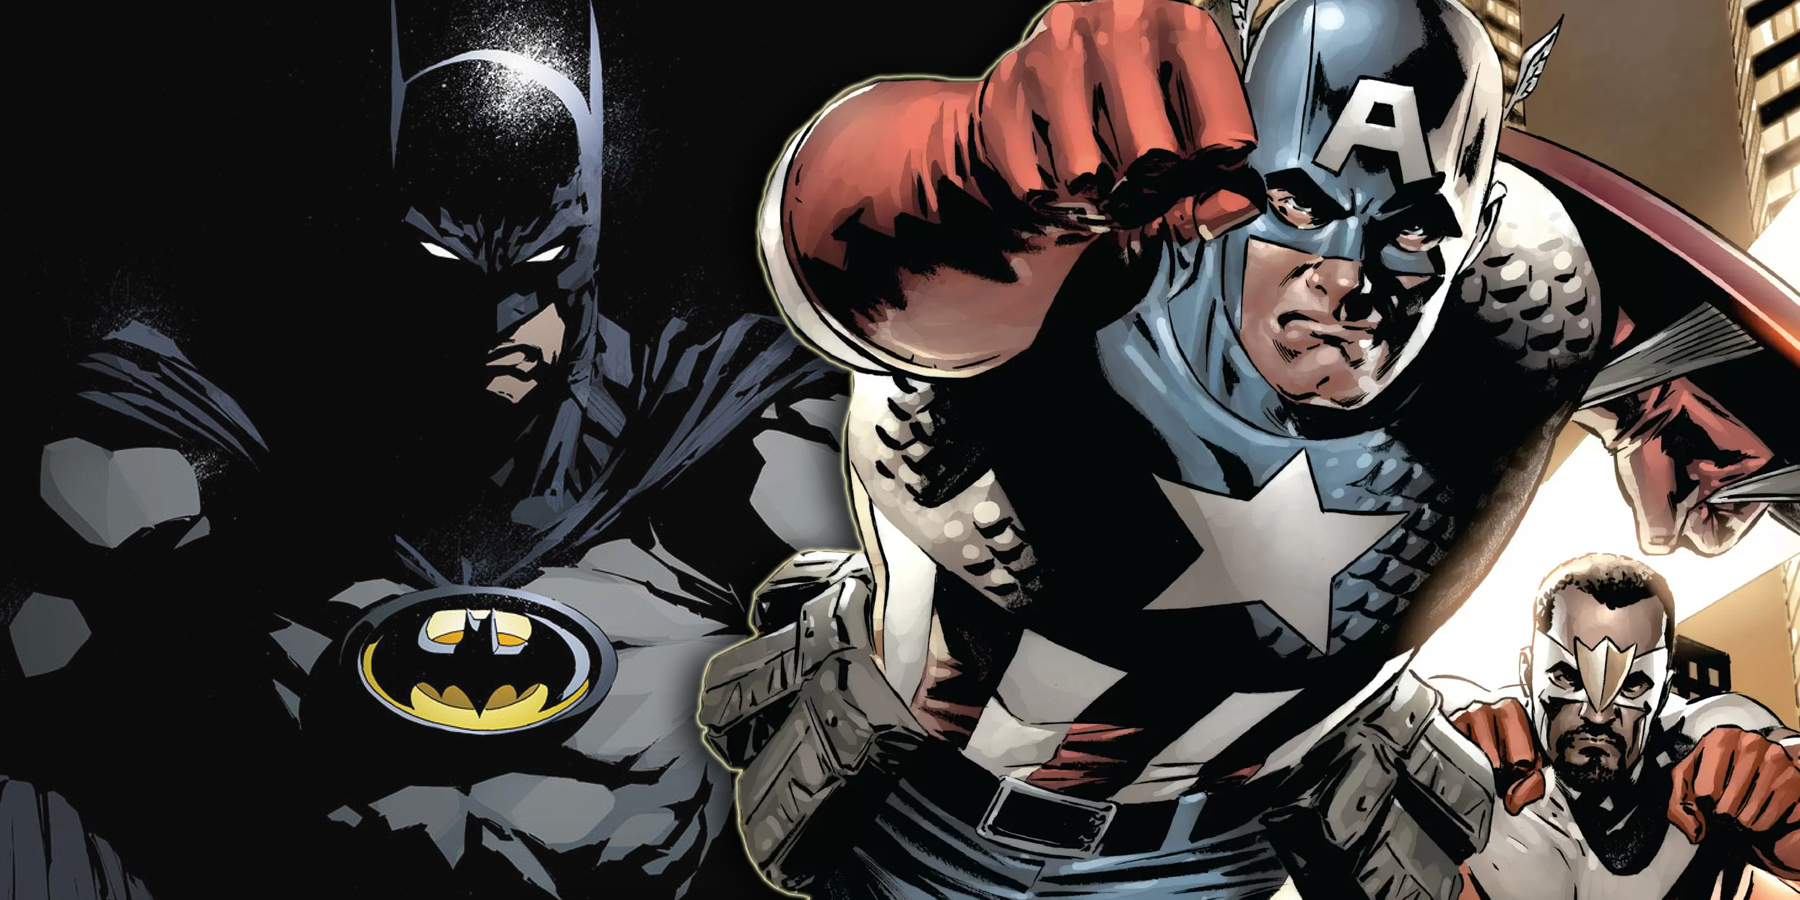 copycats 15 times marvel and dc ripped each other off cbr